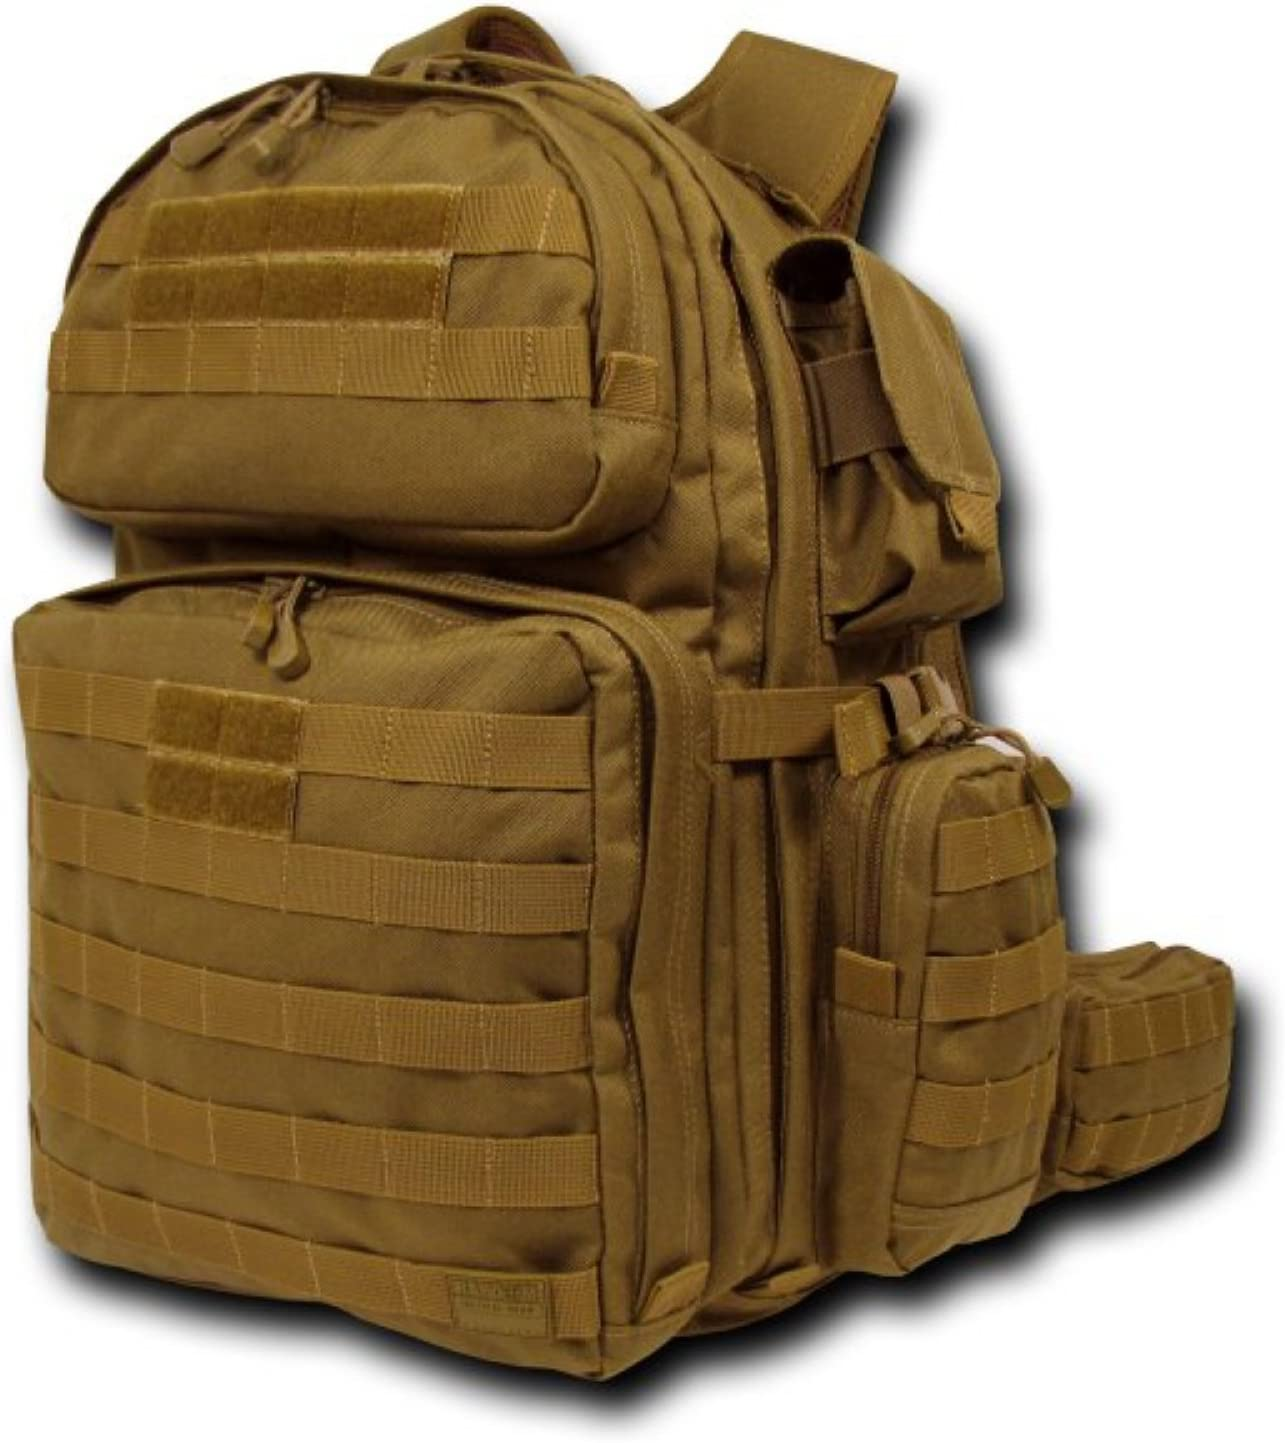 RapDom Tactical T301 Tactical Rex T-Rex Assault Pack